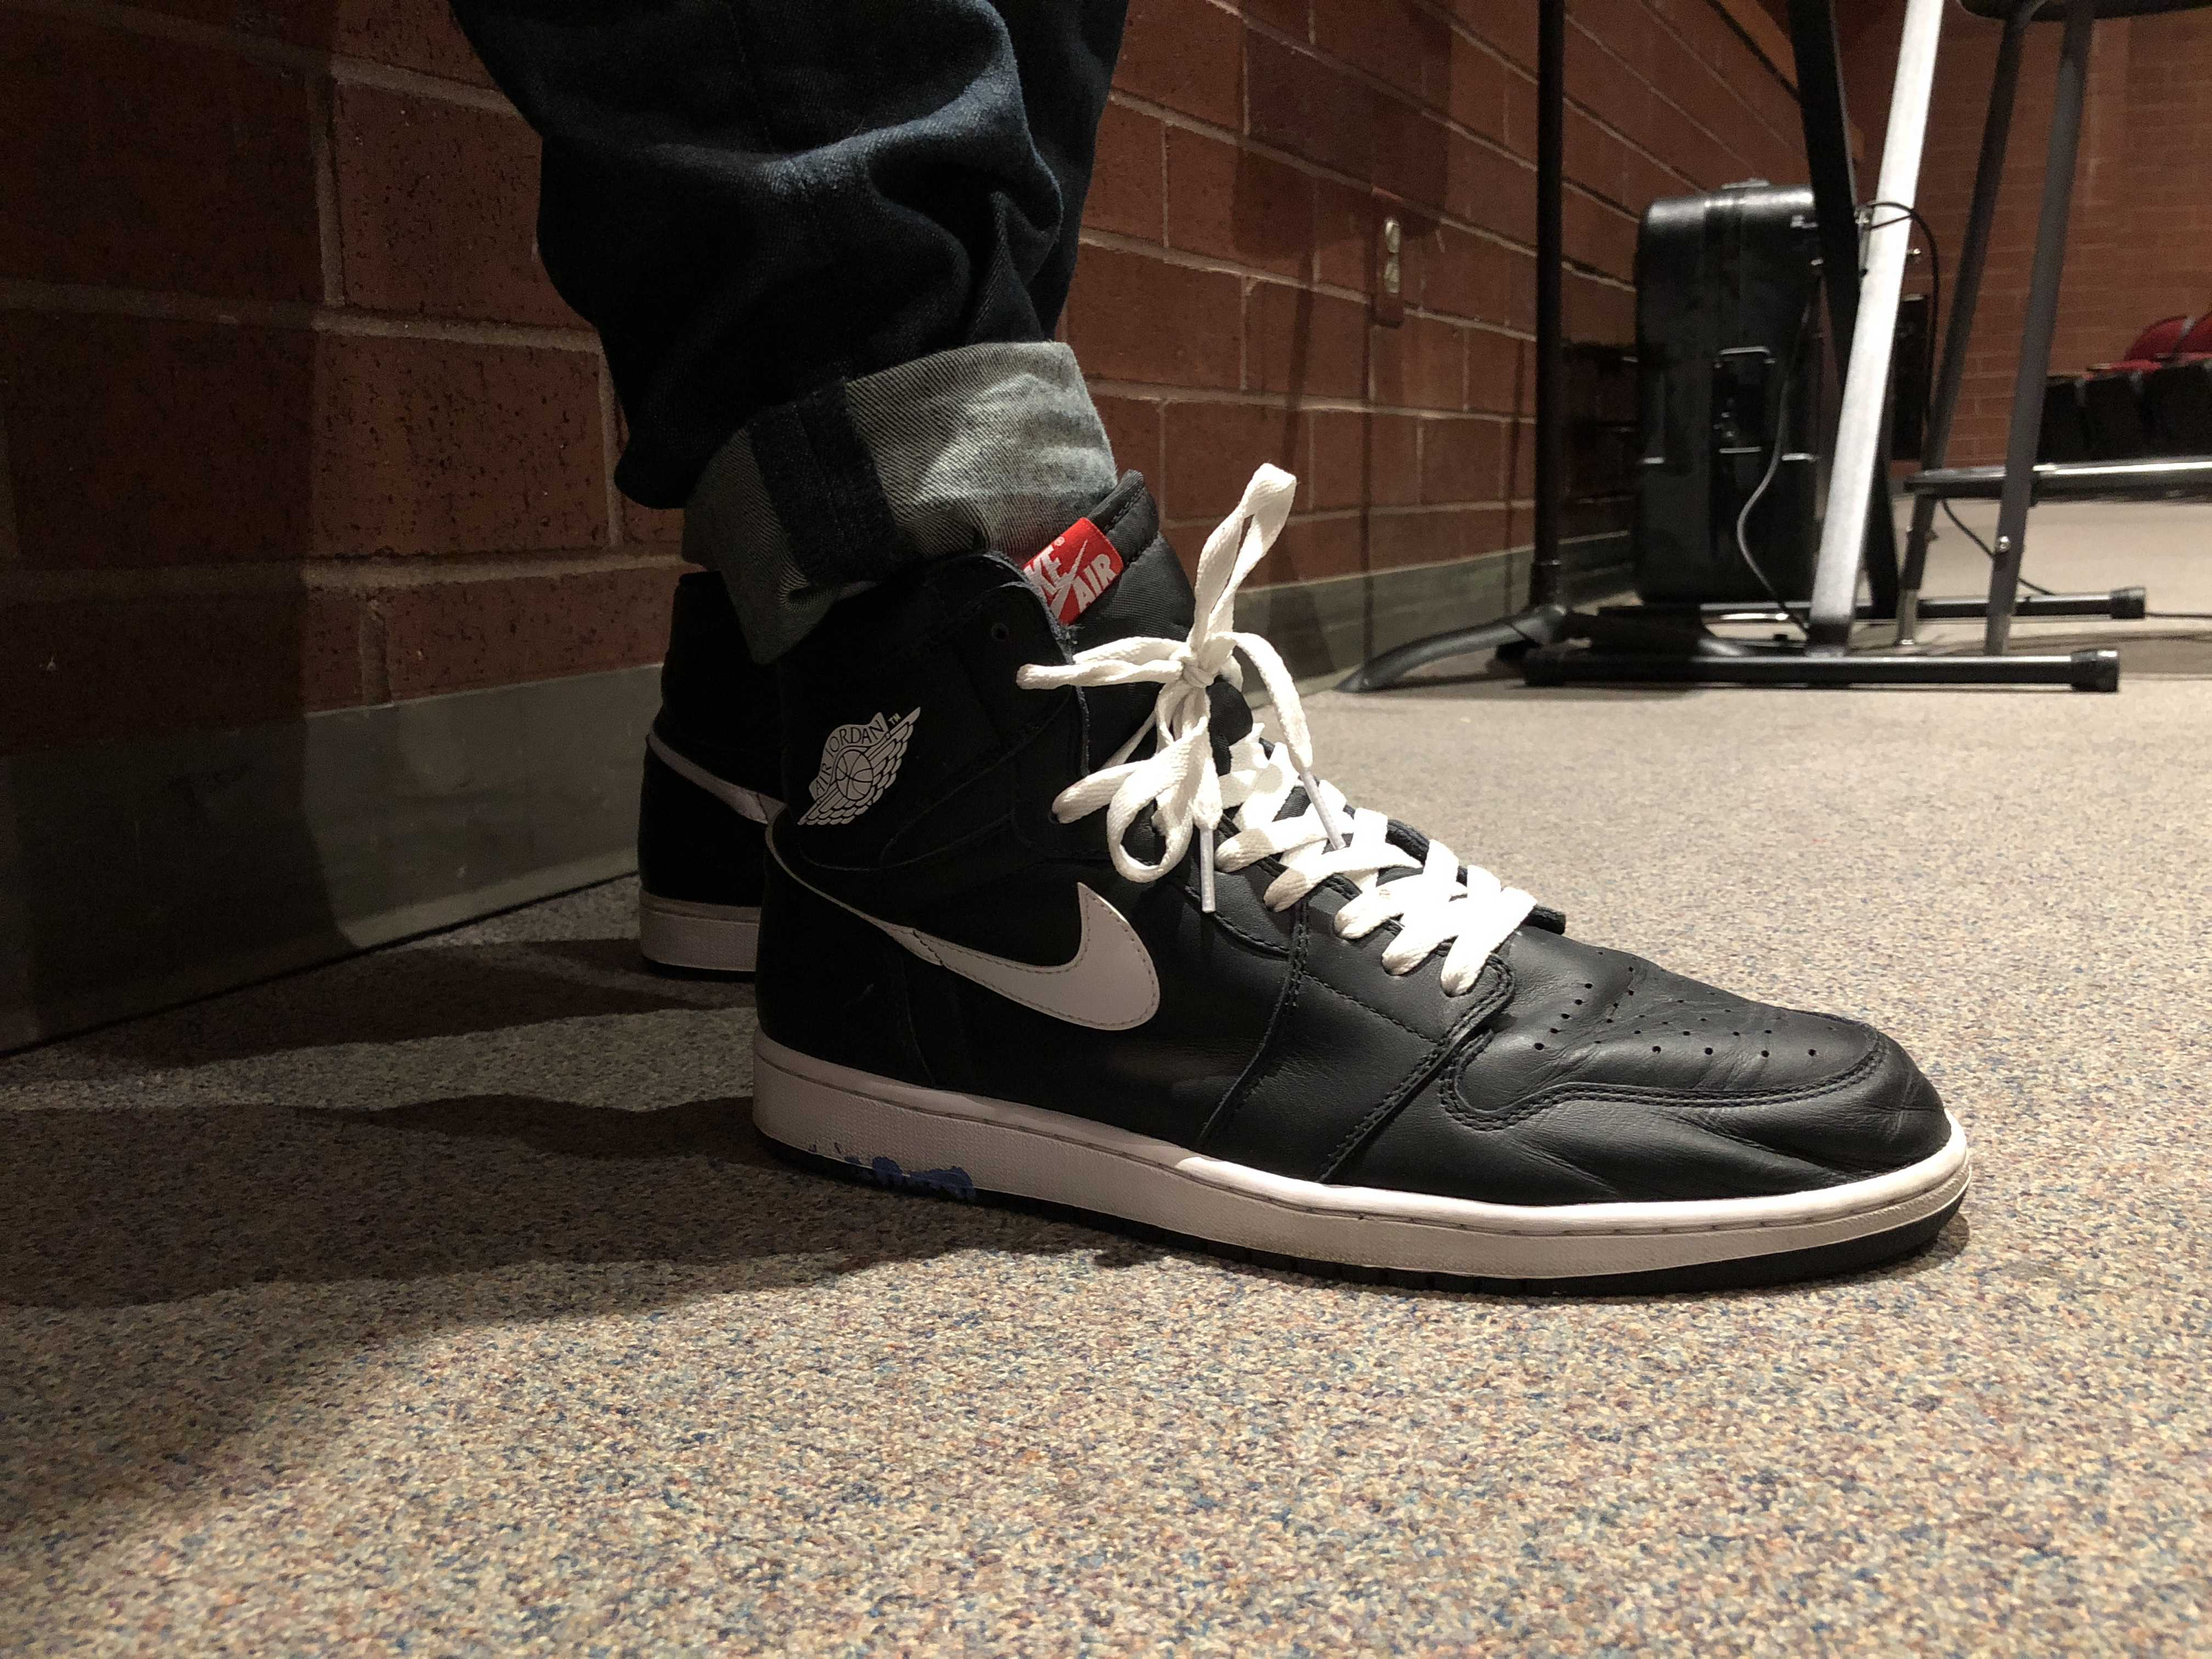 Feature Photo By: Yucheng Zhang - Senior Spencer Reagan showing off his Jordan 1's.  Reagan enjoys these particular shoes immensely, and plans to utilize them throughout the fall.